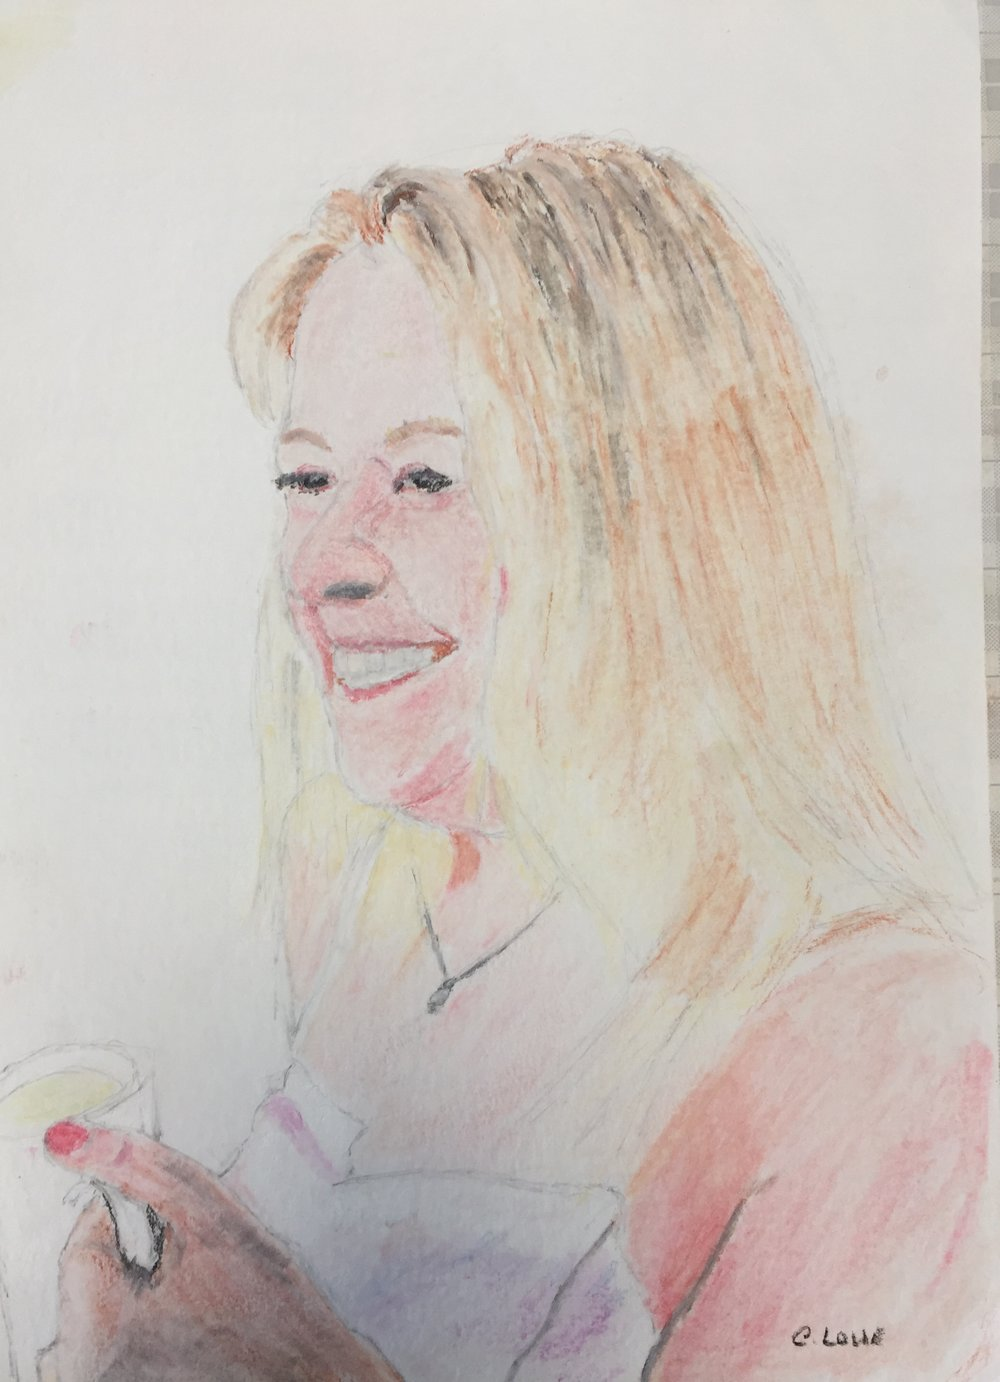 Anne portrait - Pastel pencil.